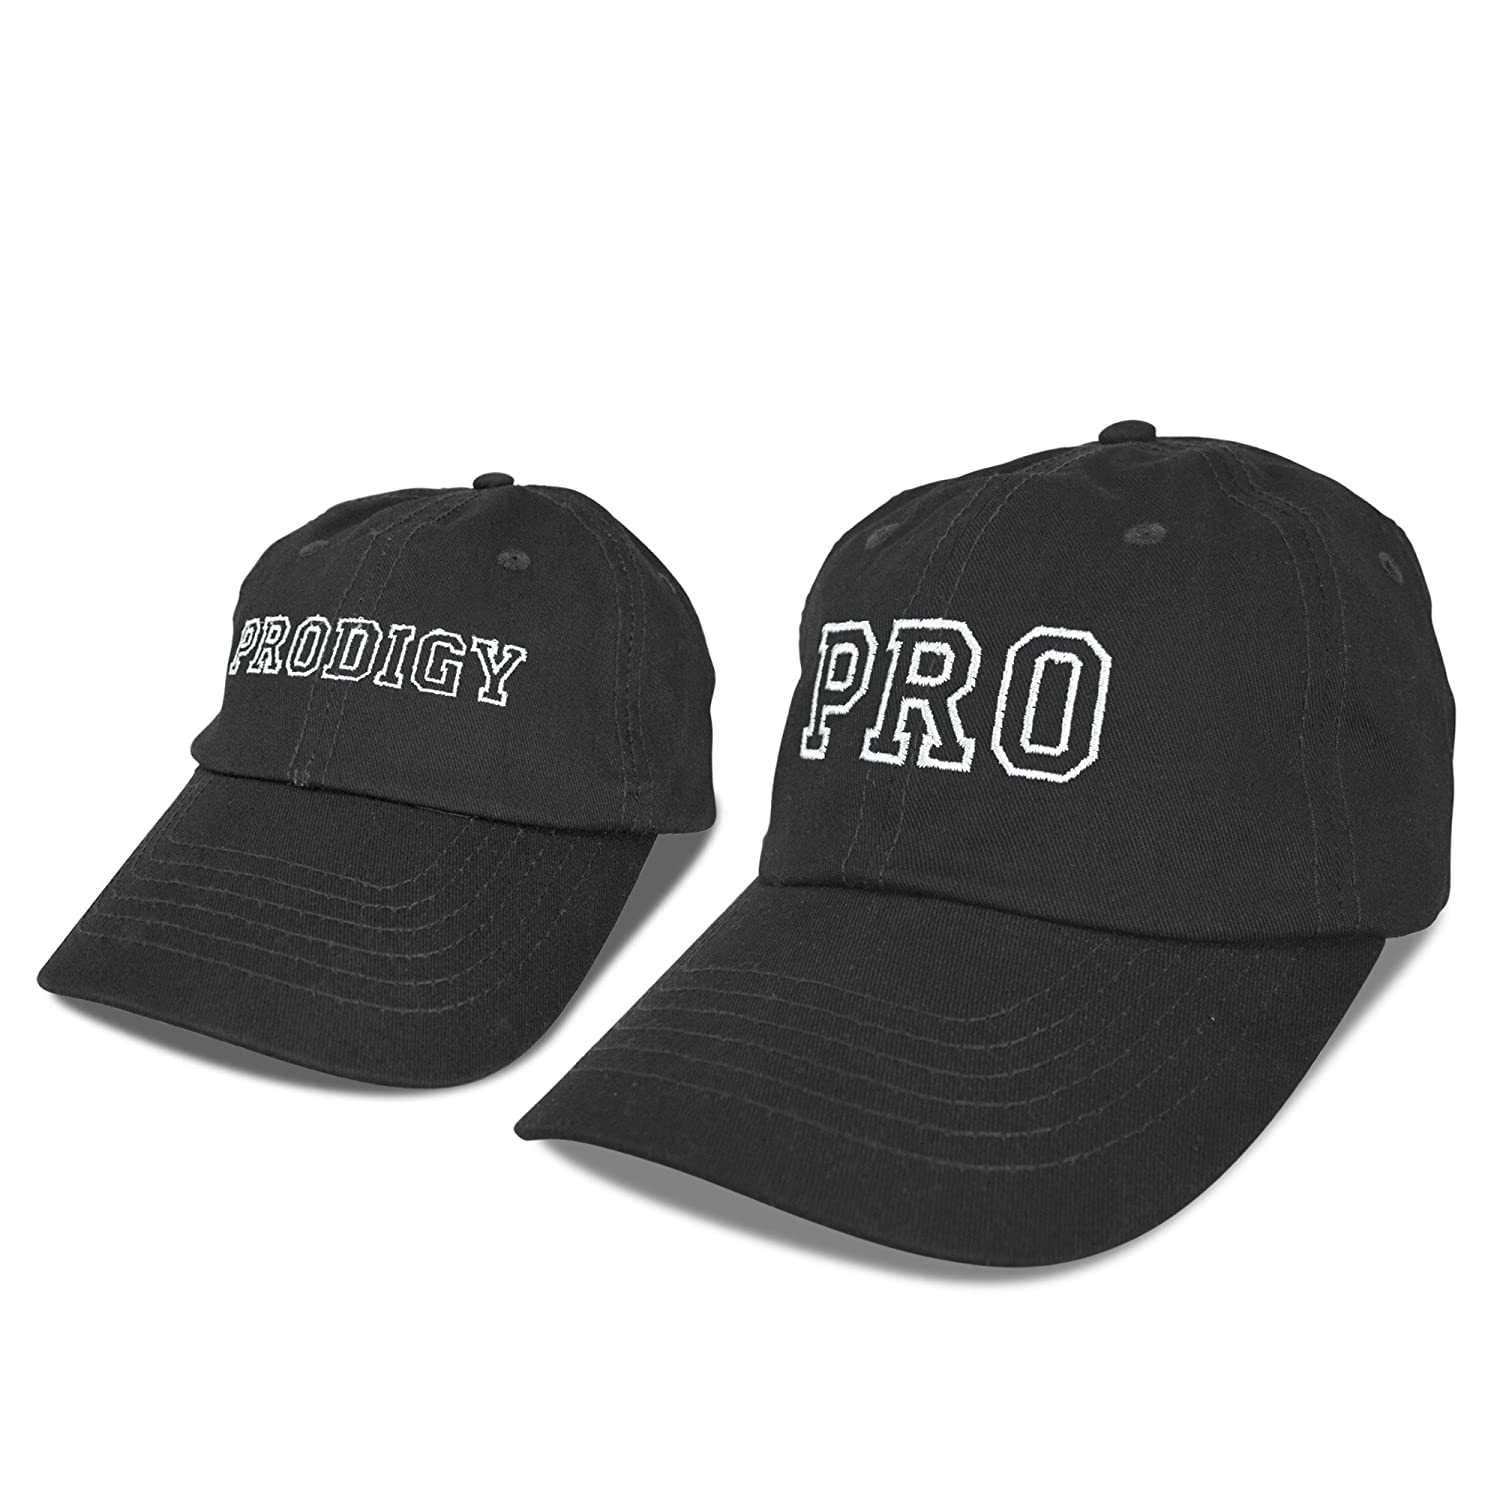 DALIX Father Son Hats Dad and Son Matching Caps Embroidered Pro Prodigy  Black at Amazon Men s Clothing store  7b7266a0e65